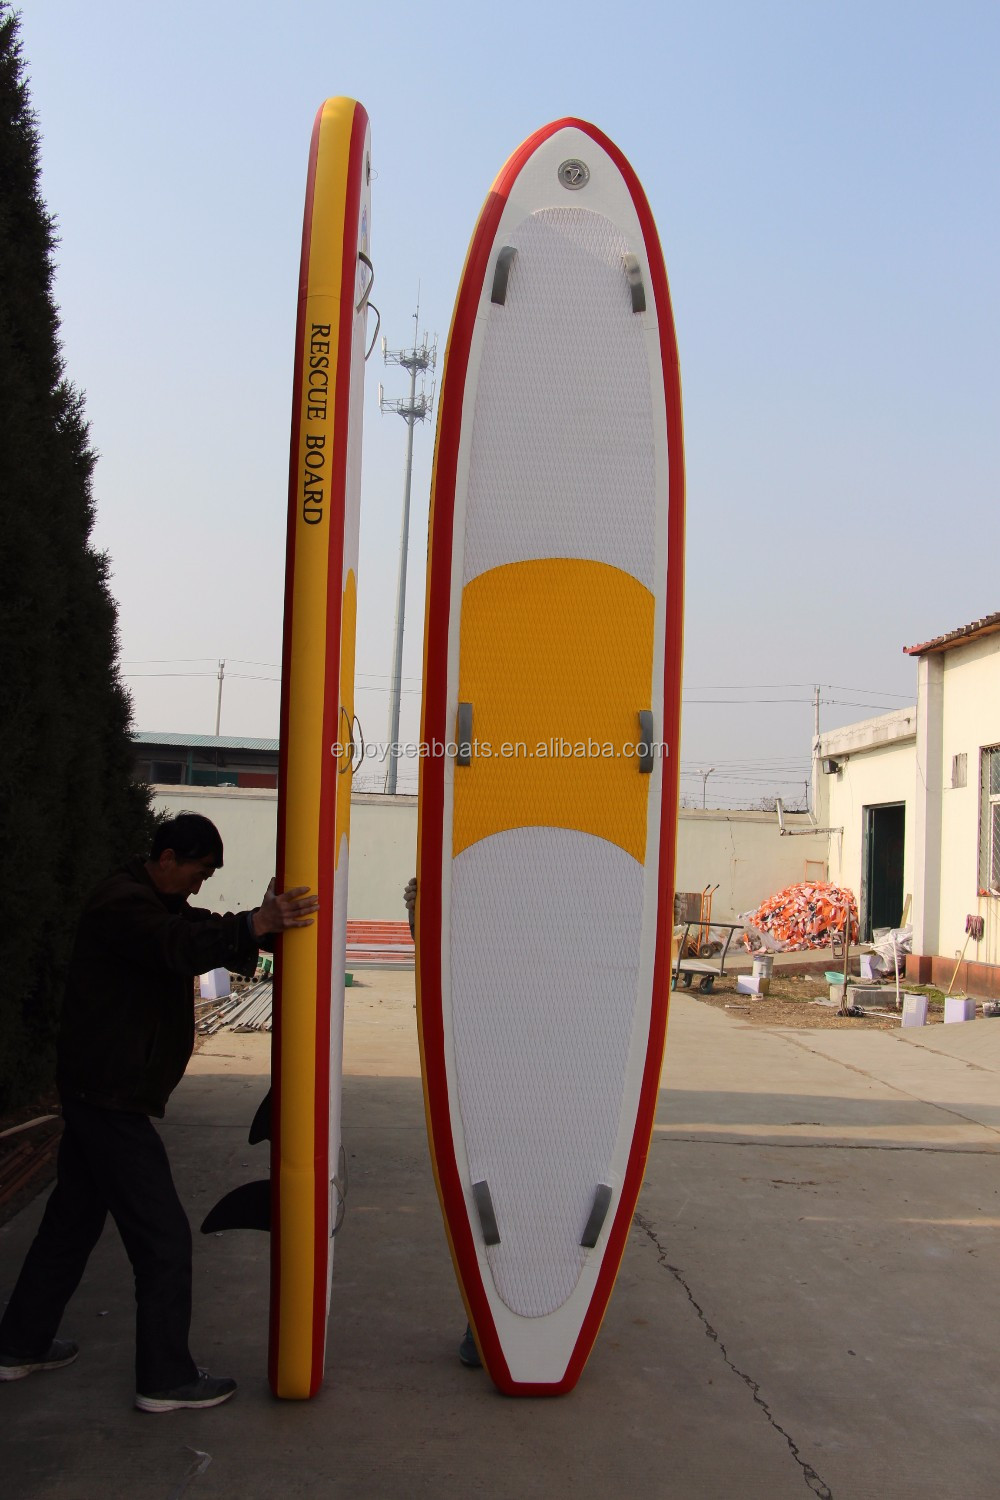 2016 New Design High Quality inflatable SUP paddle board / rescue surf / inflatable stand up paddle board for sale